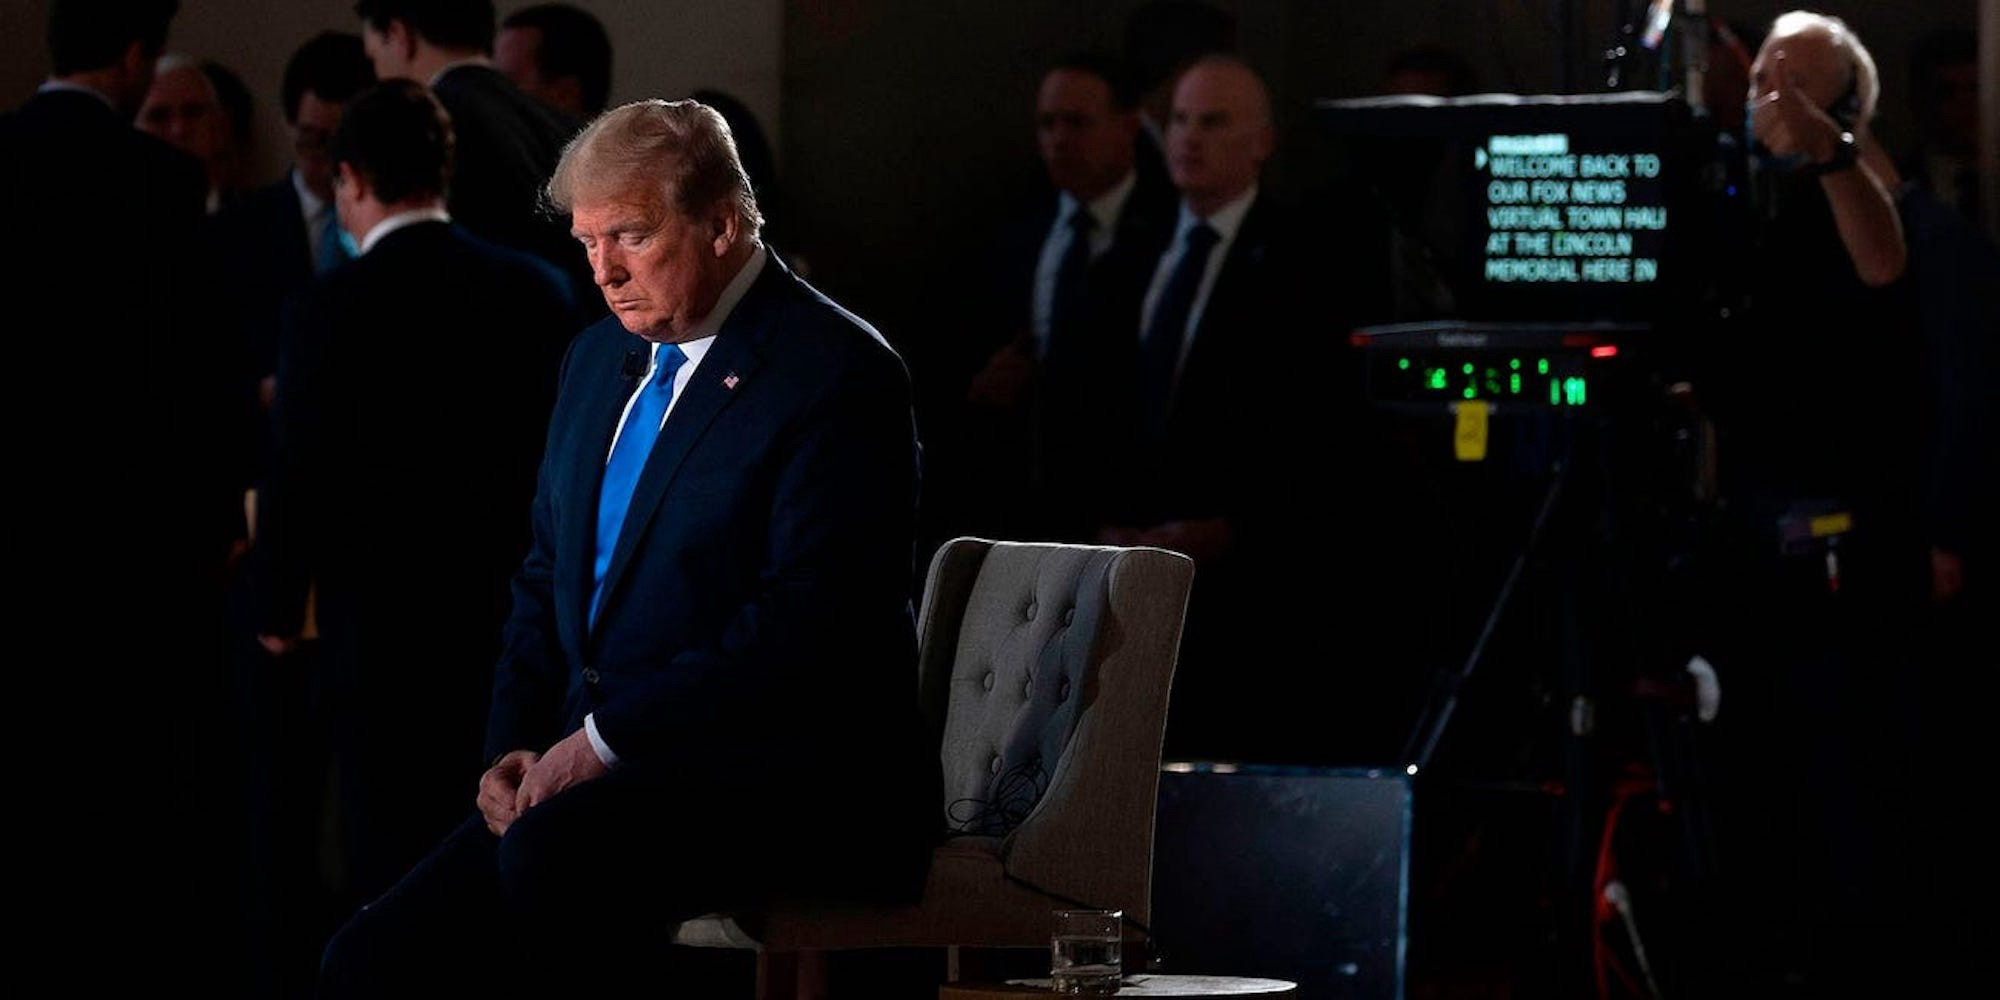 President Donald Trump during a Fox News virtual town hall on May 3, 2020.